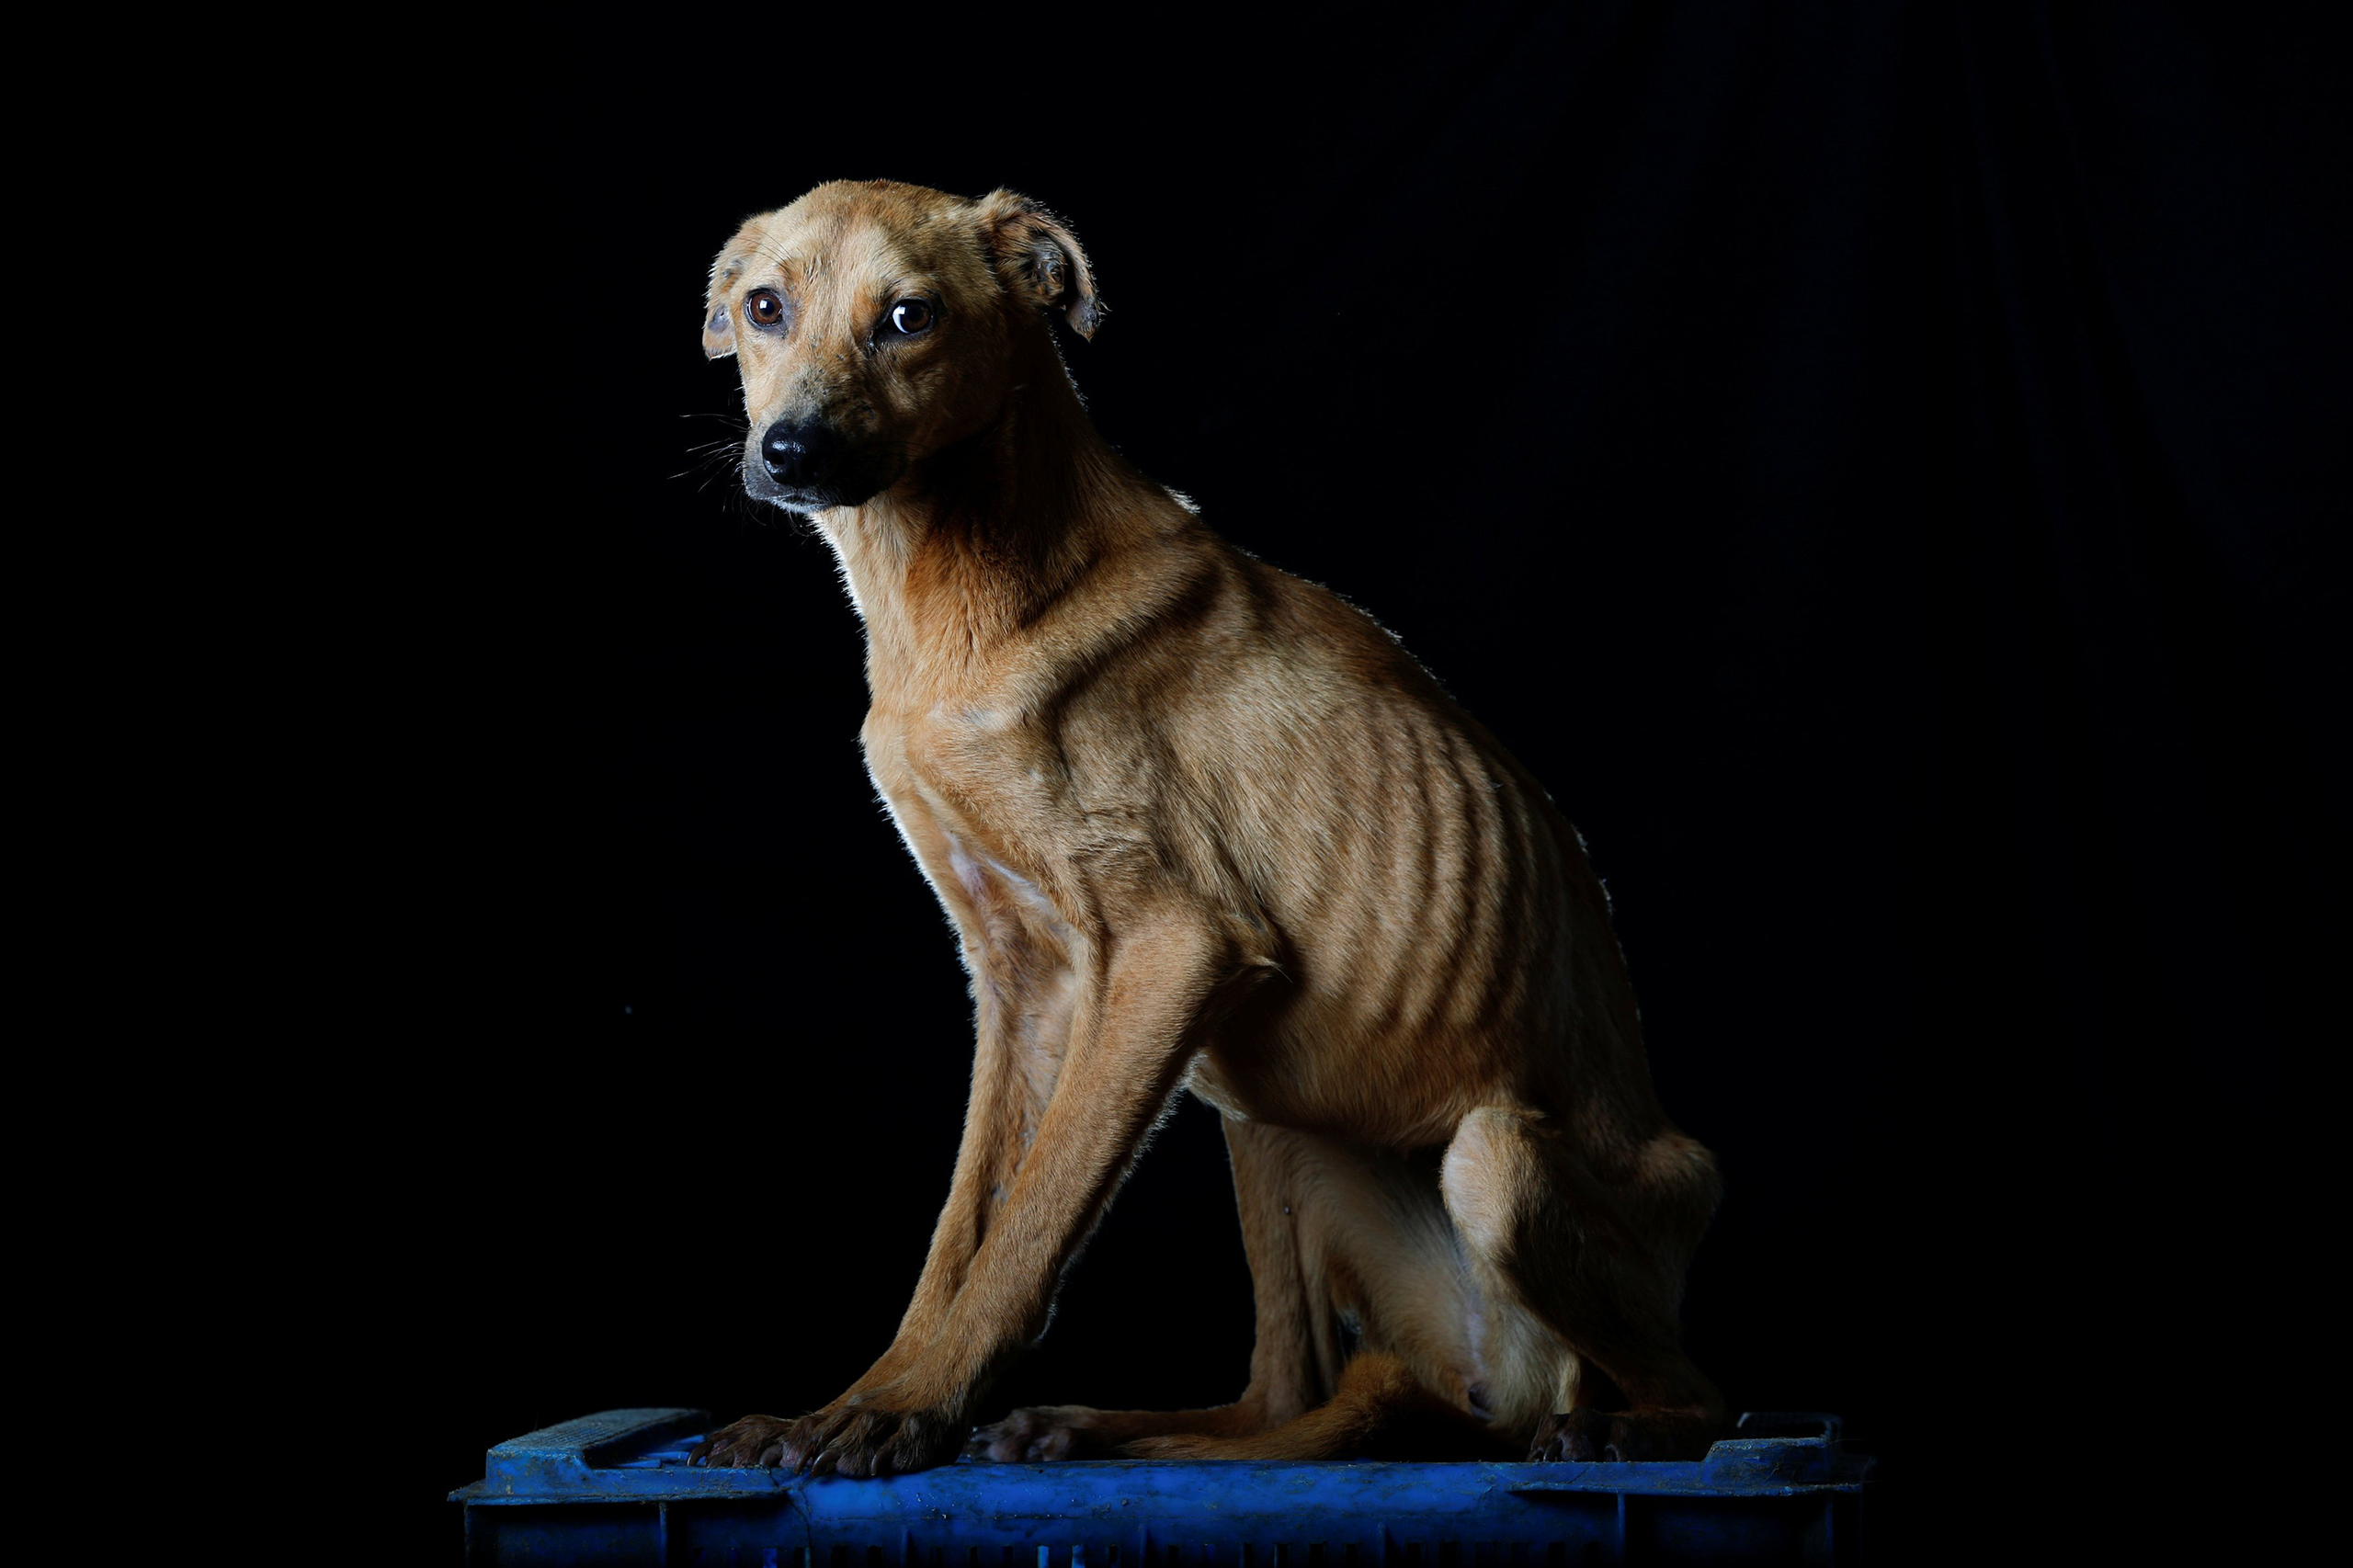 Sonrisa is pictured at the Famproa dogs shelter in Los Teques, Venezuela Aug. 16, 2016.  Sonrisa (smile), was given that name, because when someone approached her, she was frightened as if she were being beaten, but showing her teeth as if were smiling,  said Maria Silva, who takes care of dogs at the shelter. Sonrisa died the week after the photo was taken.